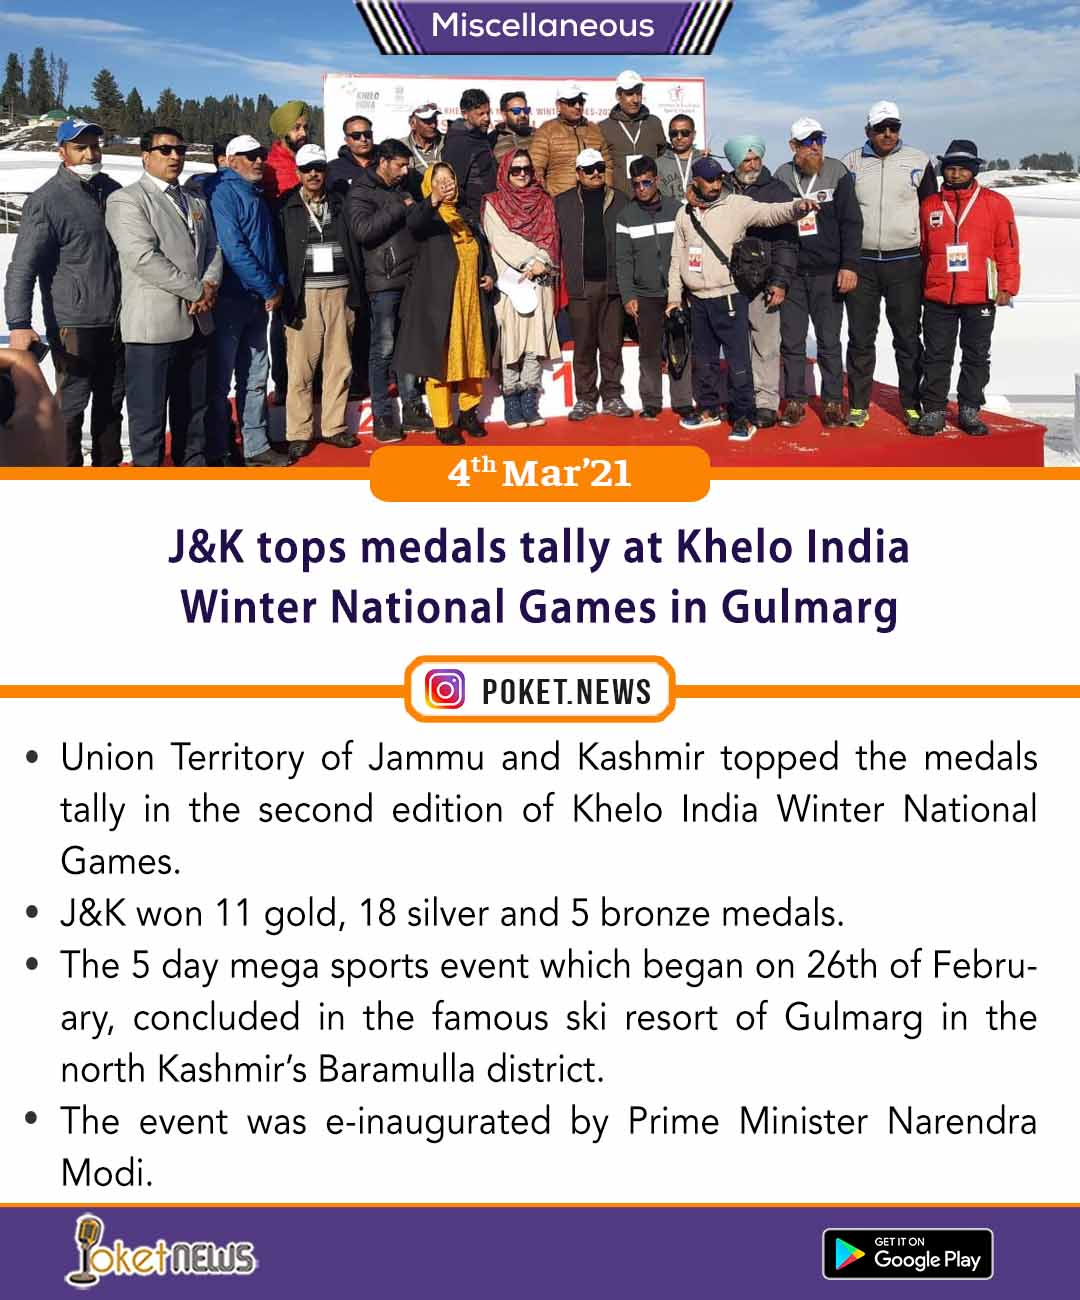 J&K tops medals tally at Khelo India Winter National Games in Gulmarg